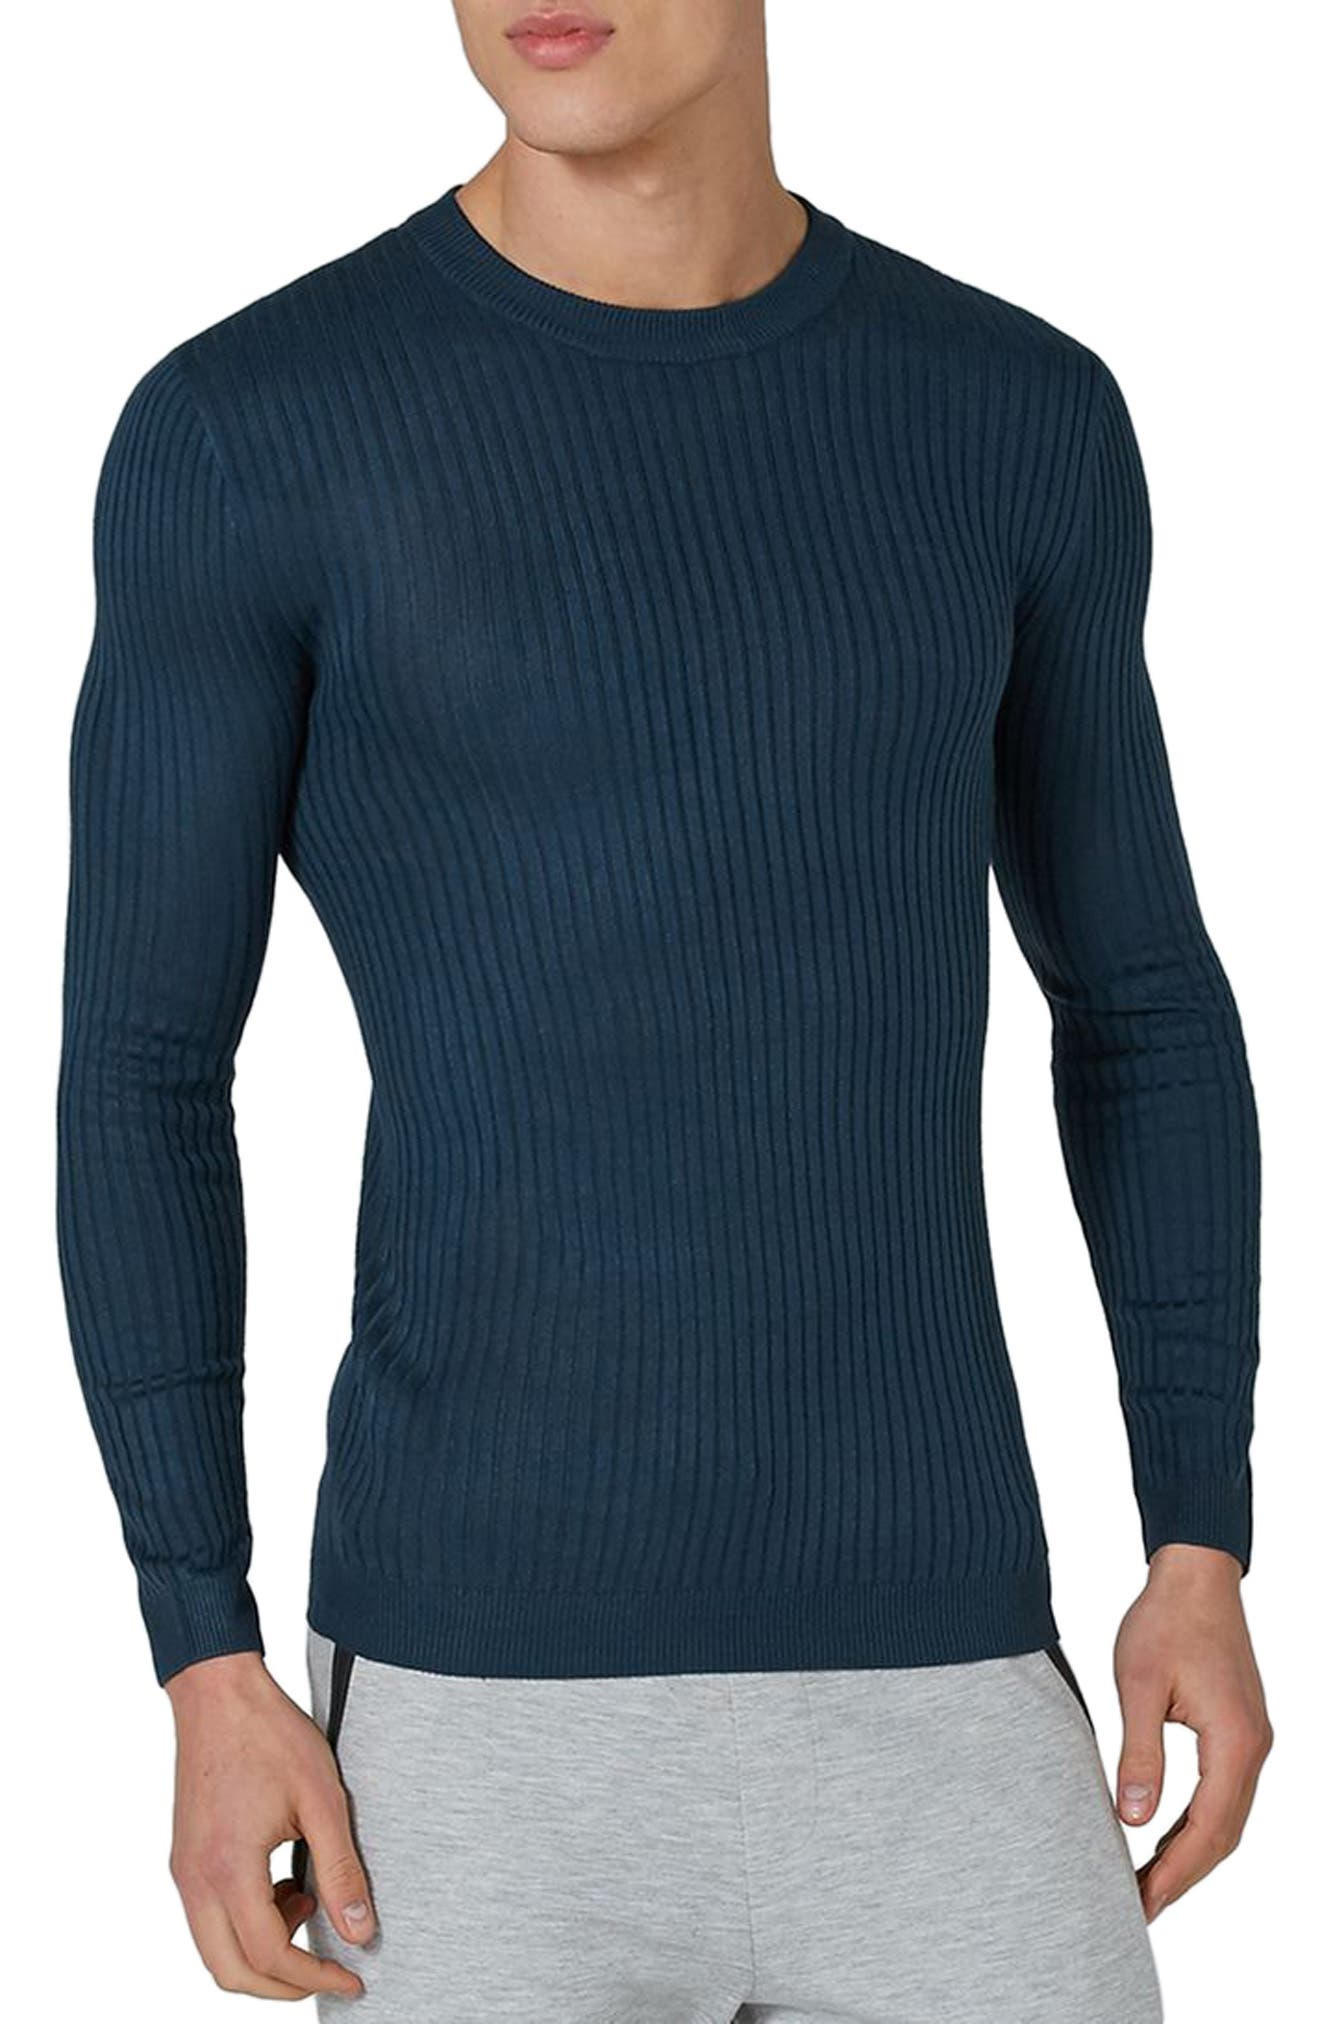 Ribbed Muscle Fit Sweater,                         Main,                         color, Mid Blue